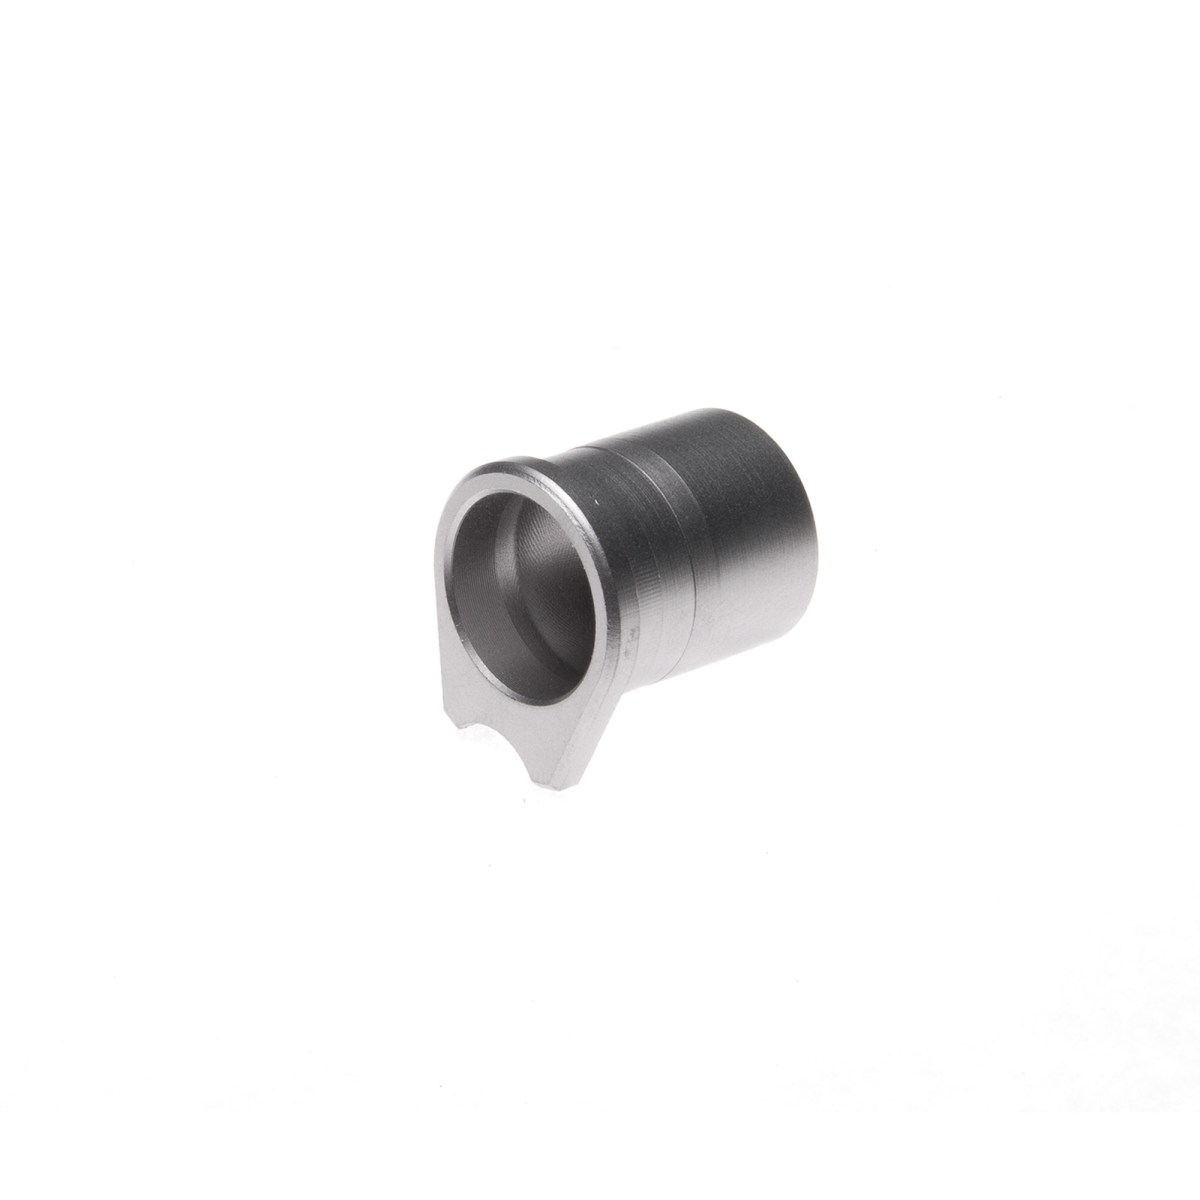 Nighthawk custom barrel bushing govt stainless